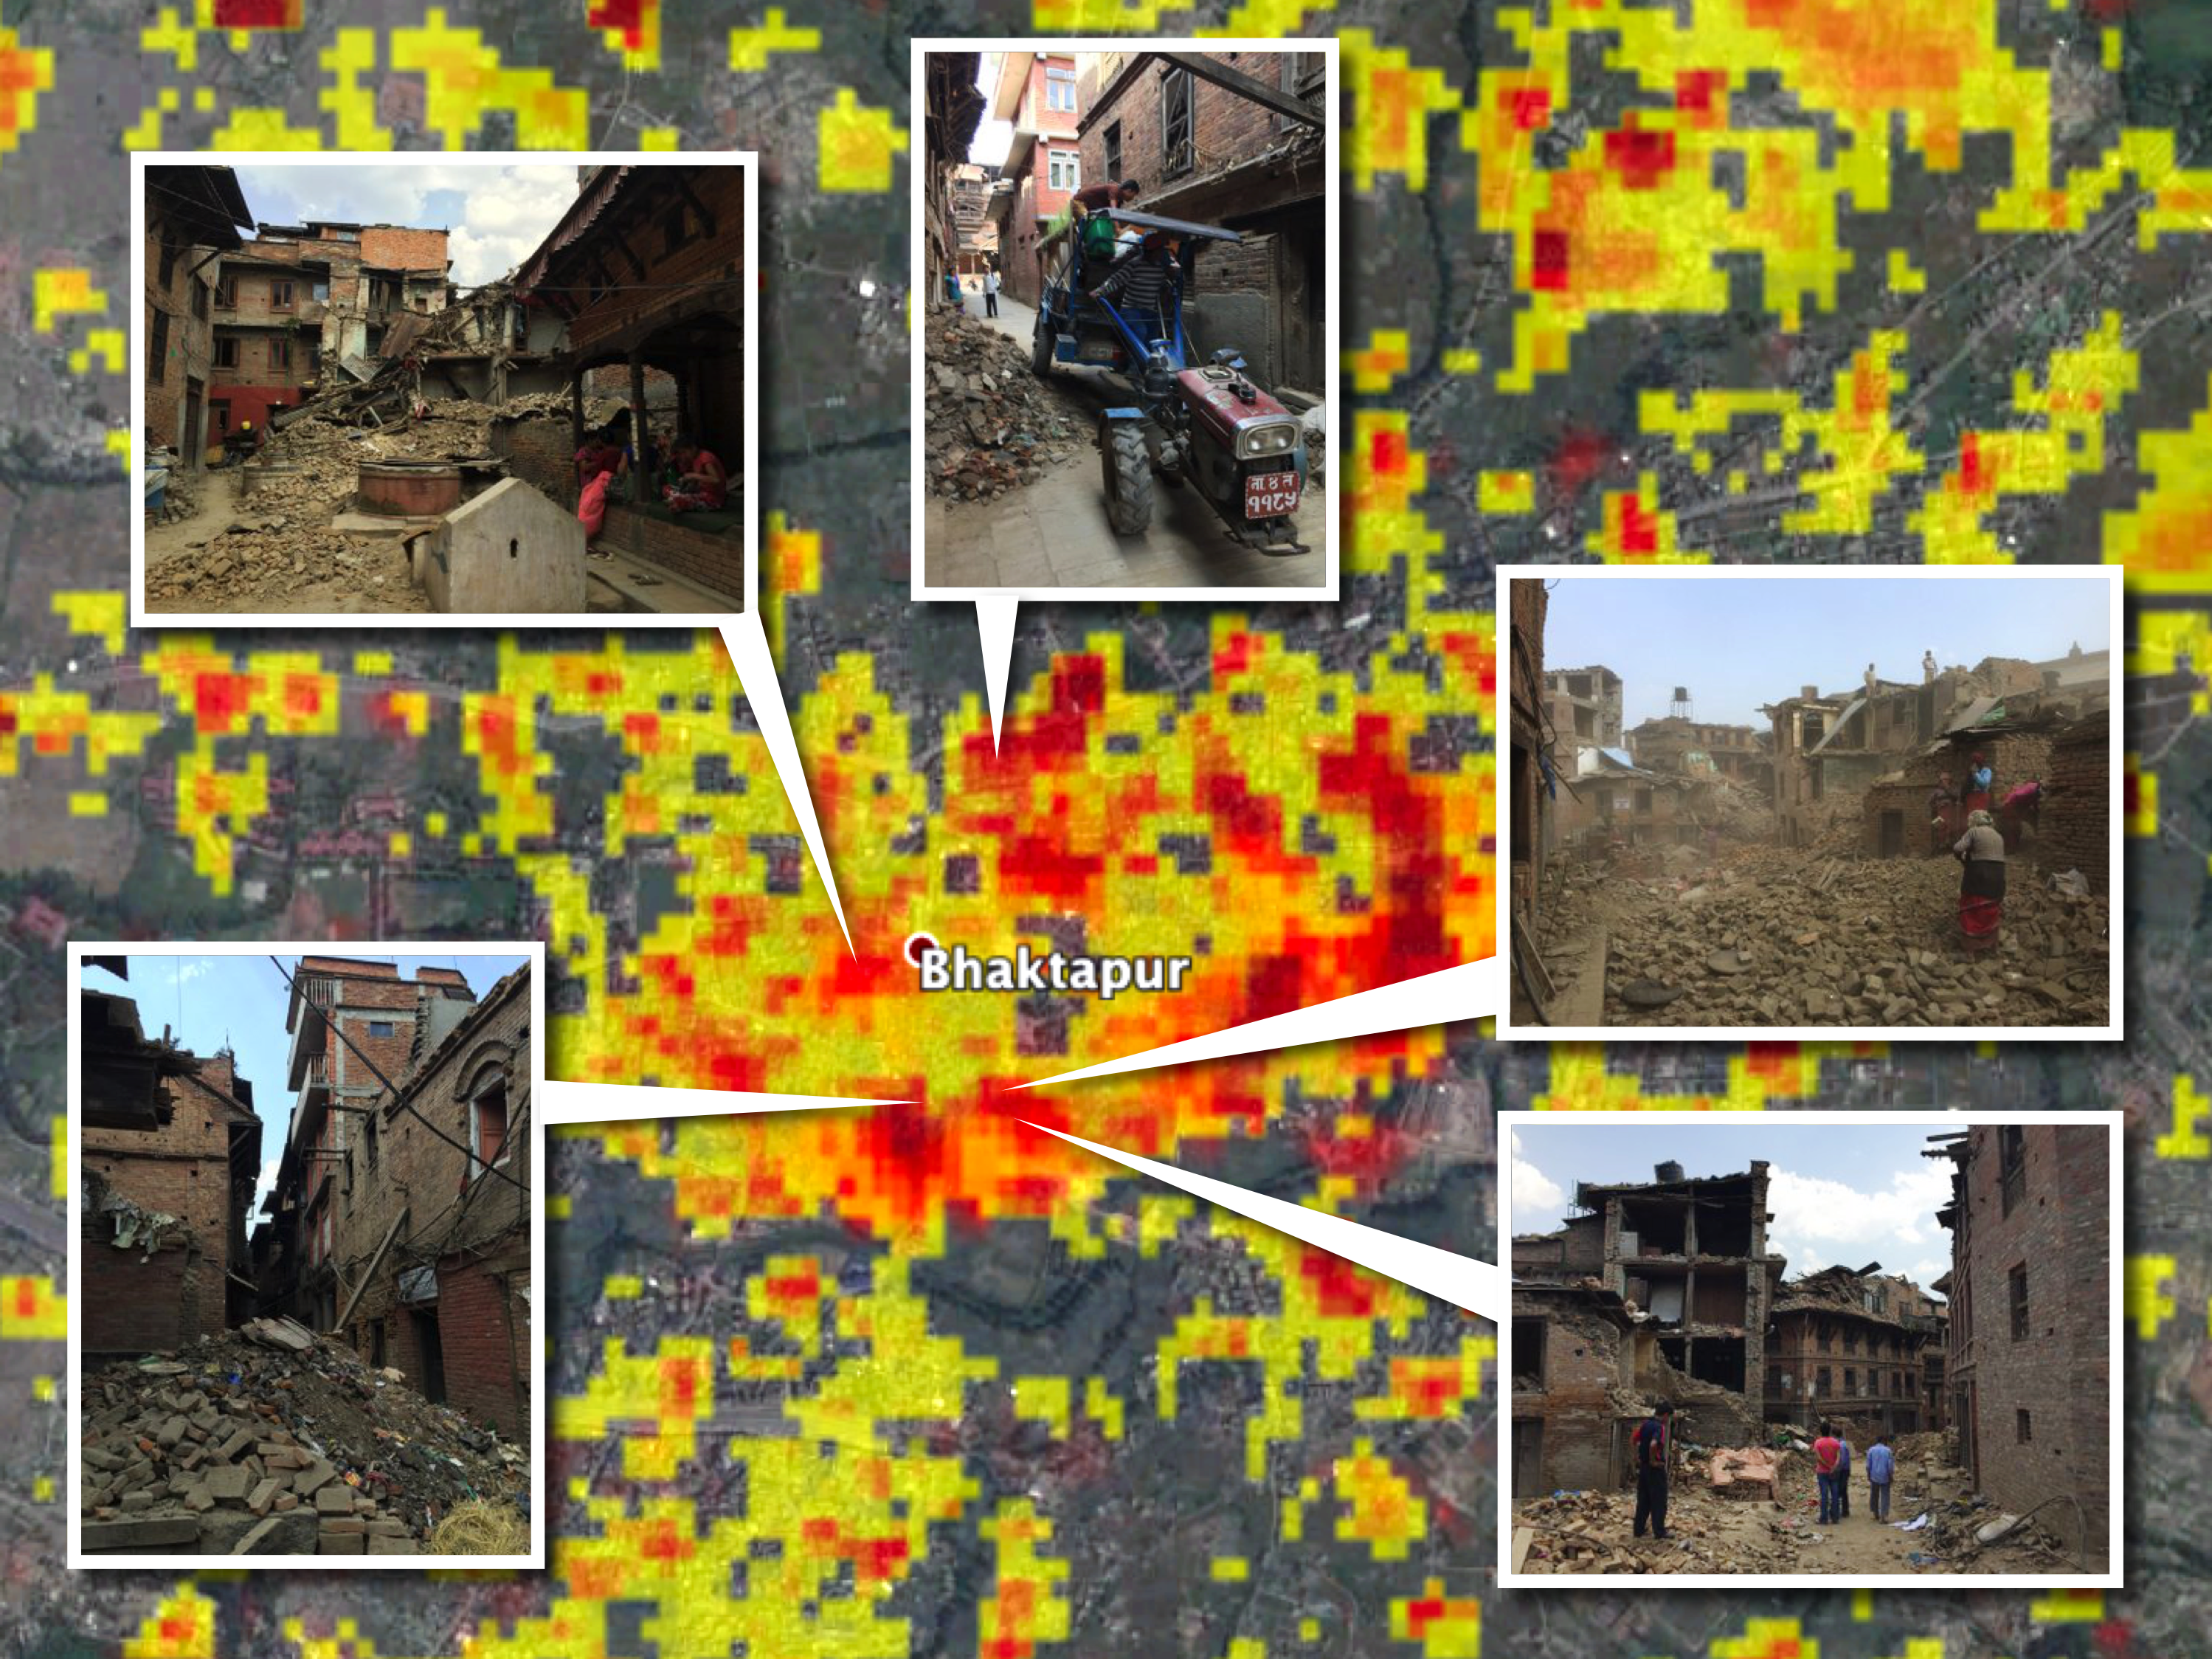 2015 Earthquakes Caused Great Damage In Bhakatpur Nepal